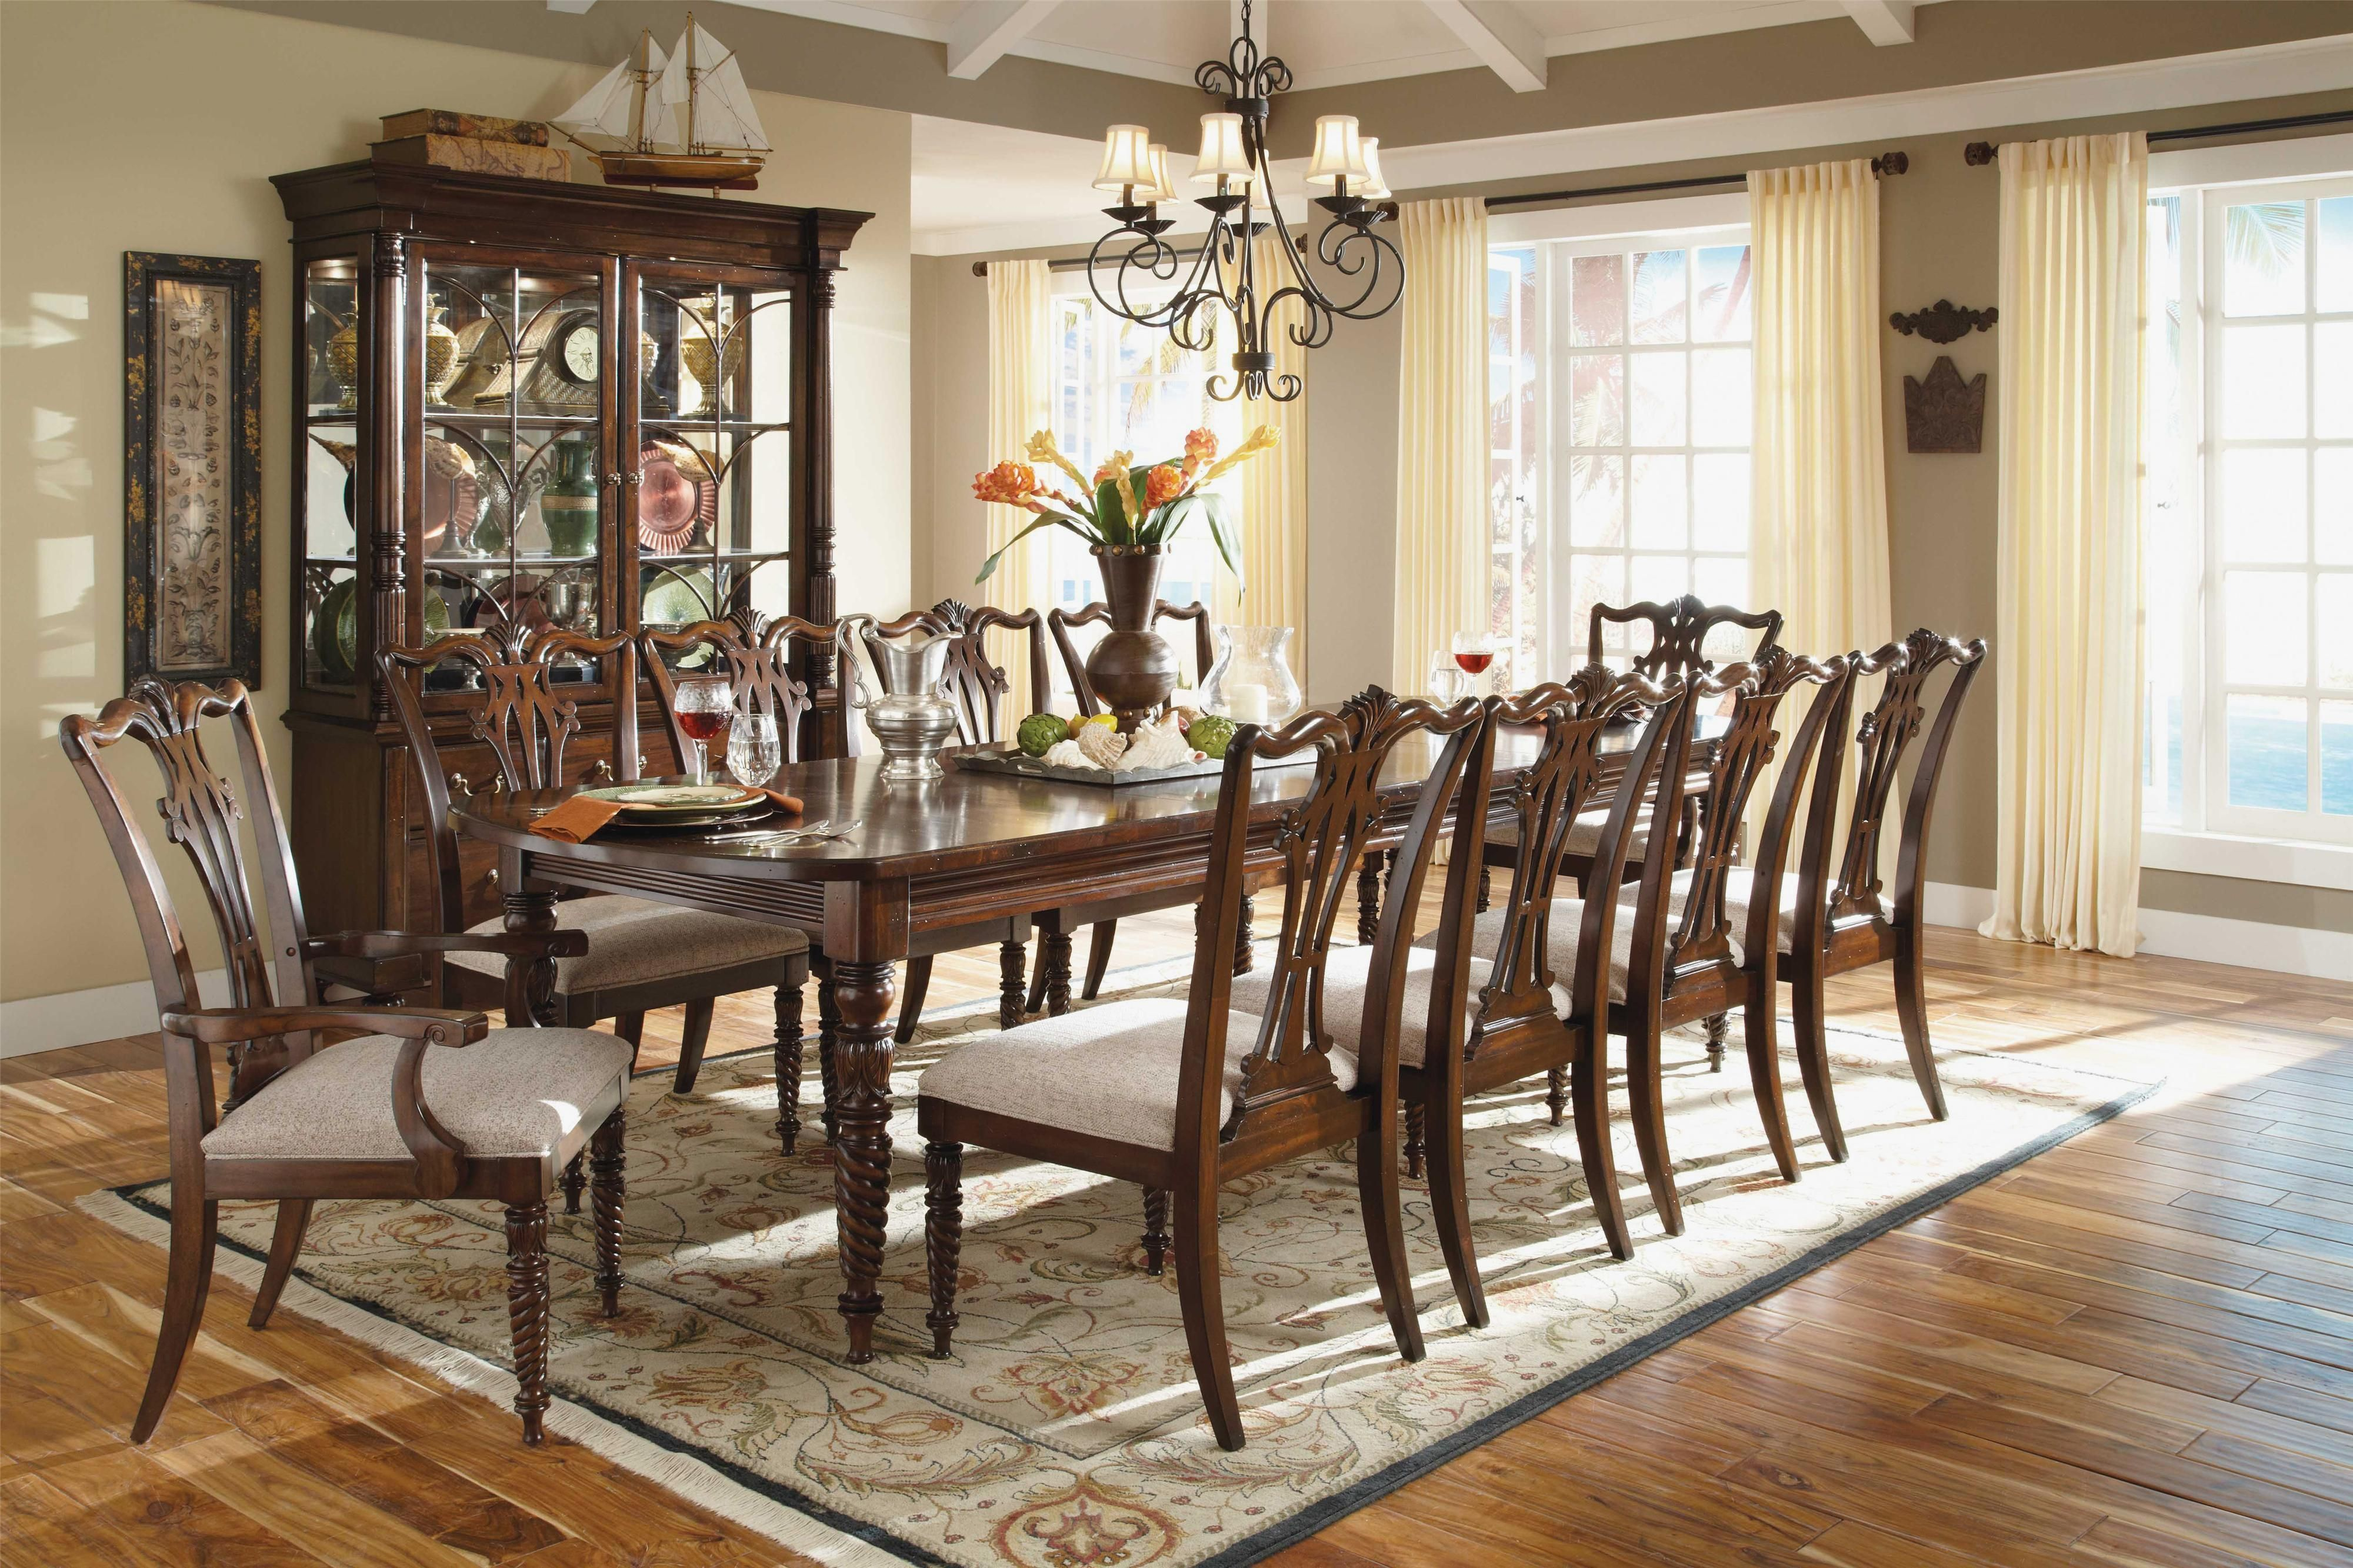 Dining Room French Country Sets Wood Table For 10 Formal Curtains